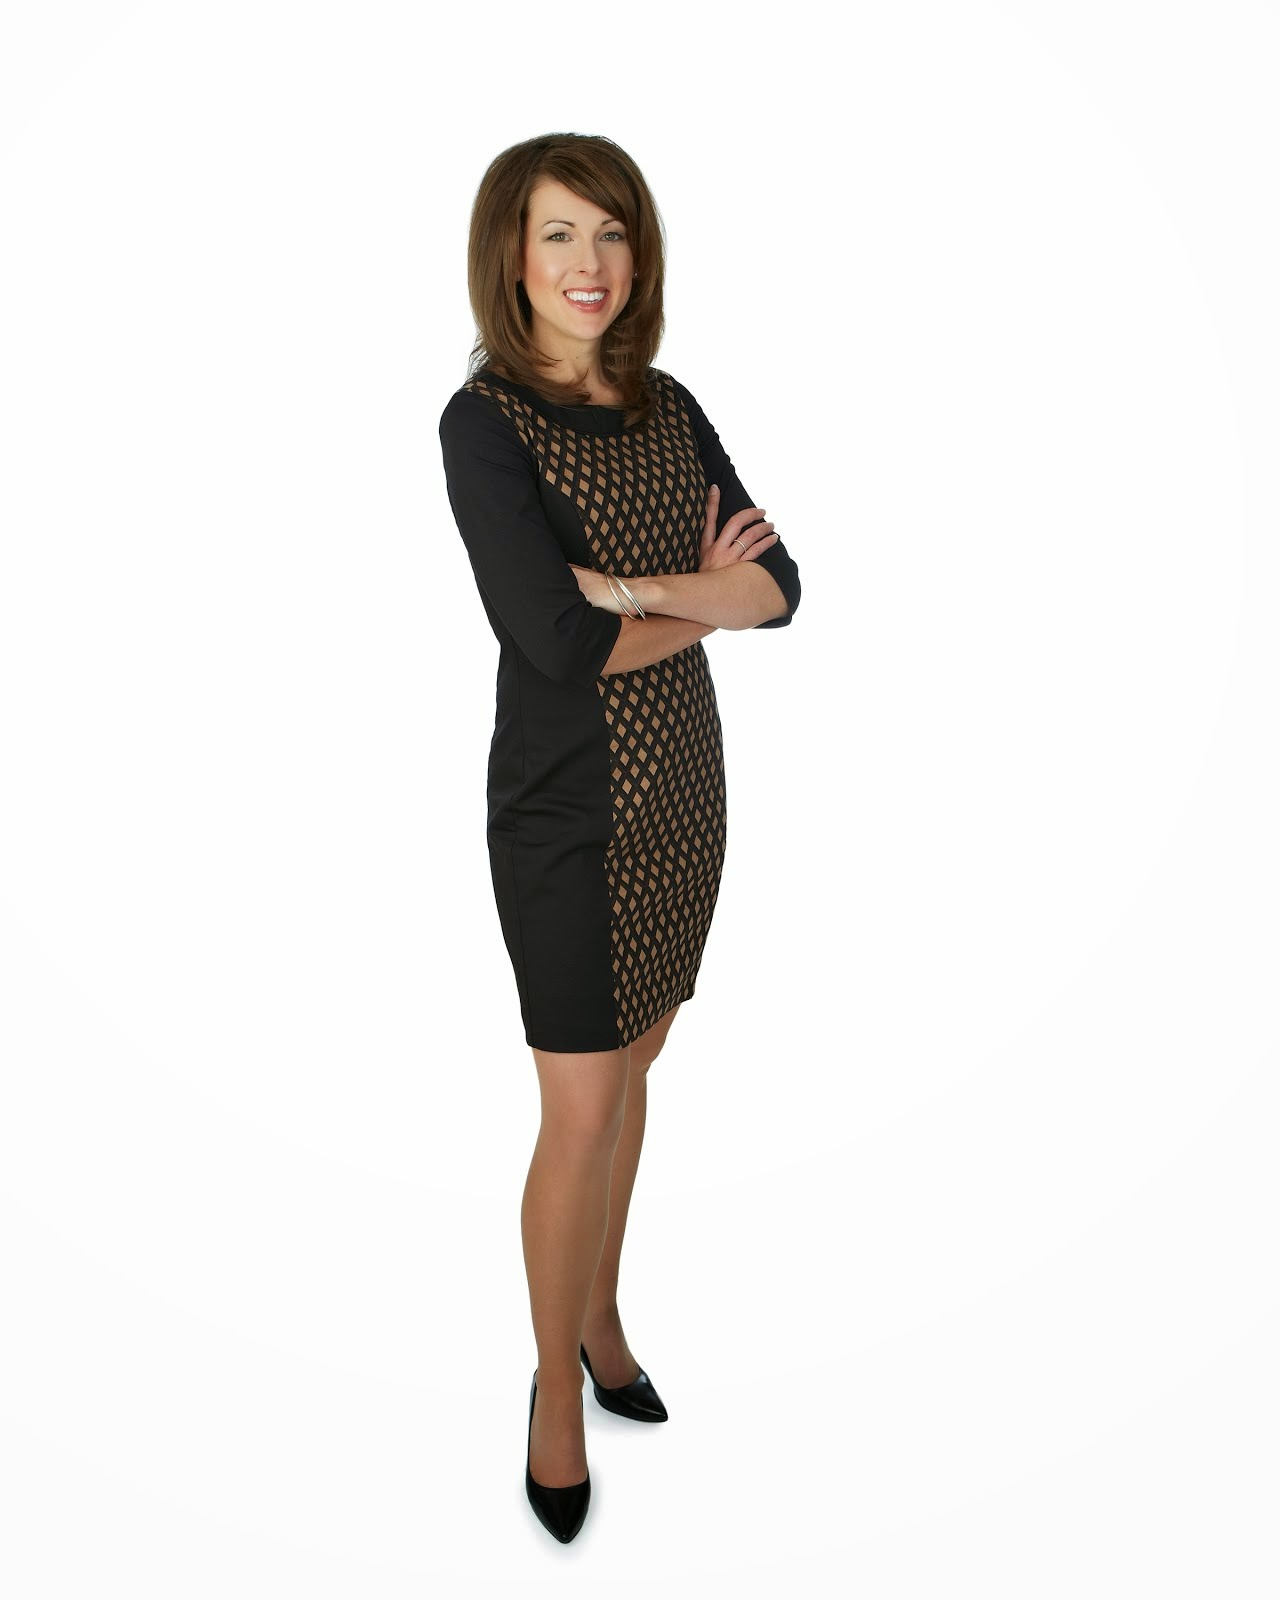 Edmonton Mortgage Broker, Natalie Wellings